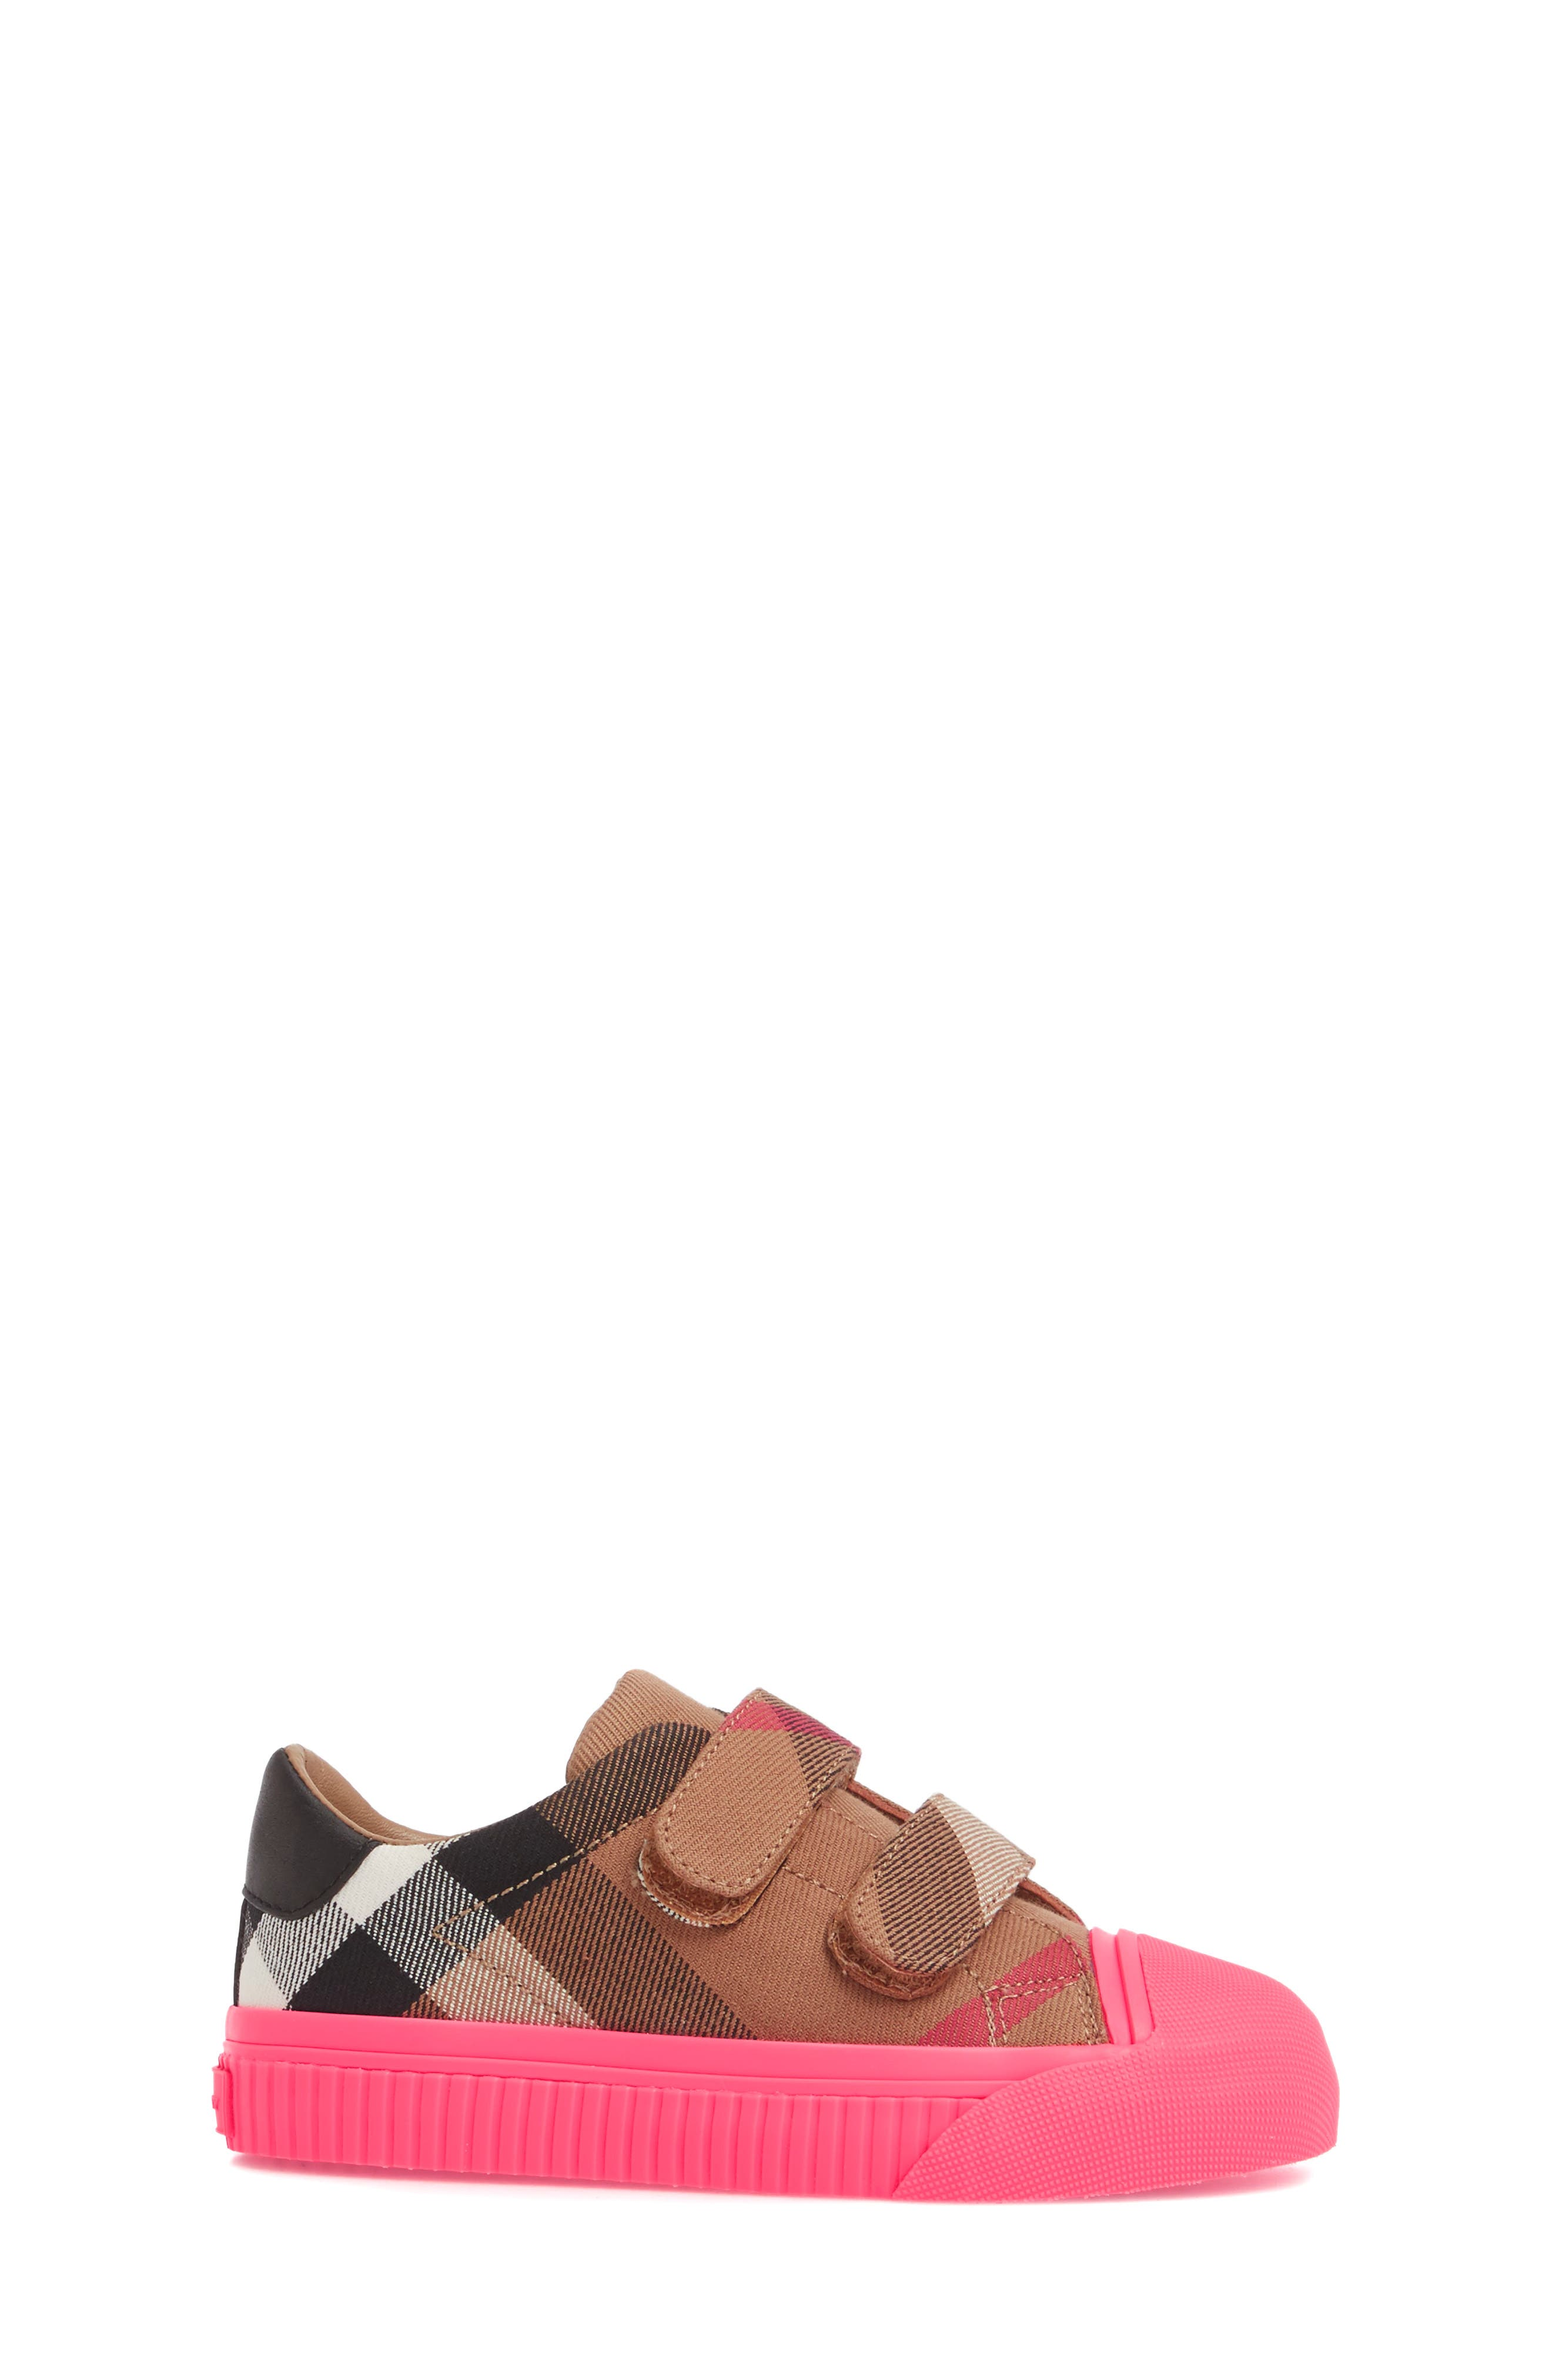 Belside Sneaker,                             Alternate thumbnail 3, color,                             671